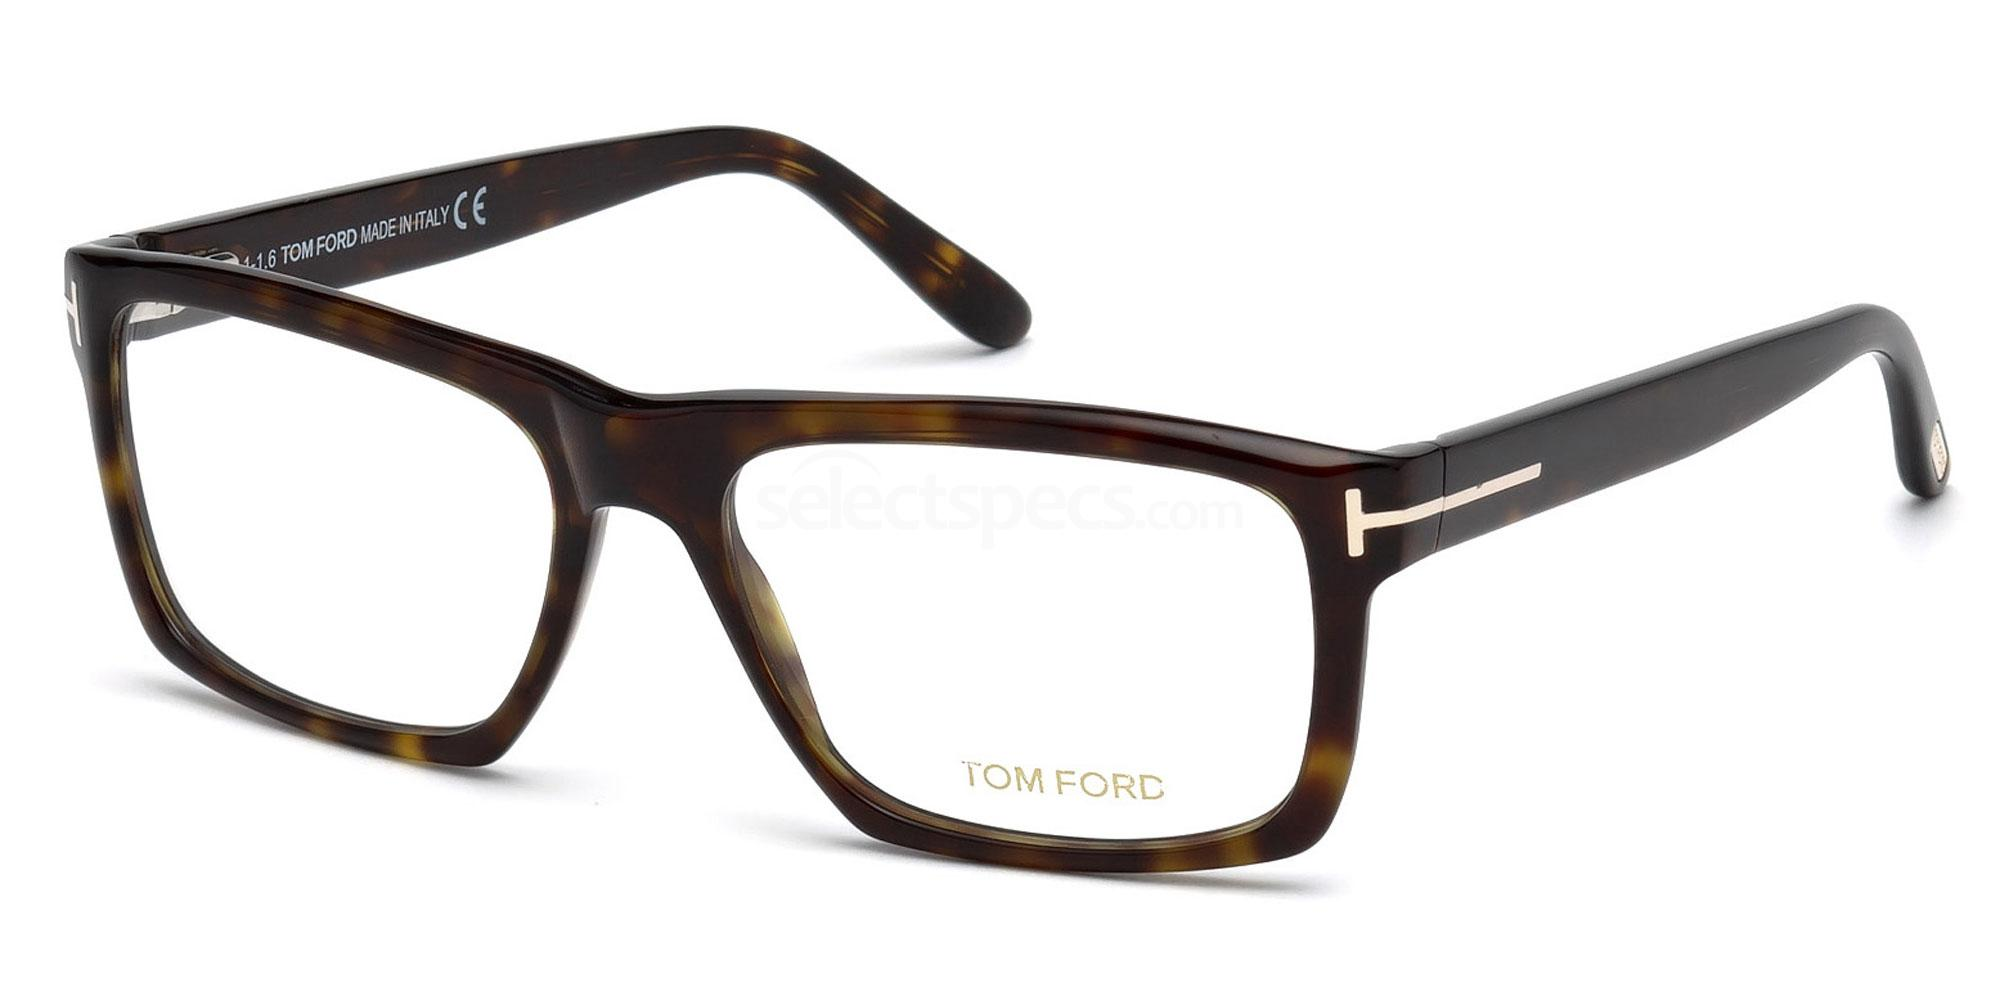 Tom Ford glasses men